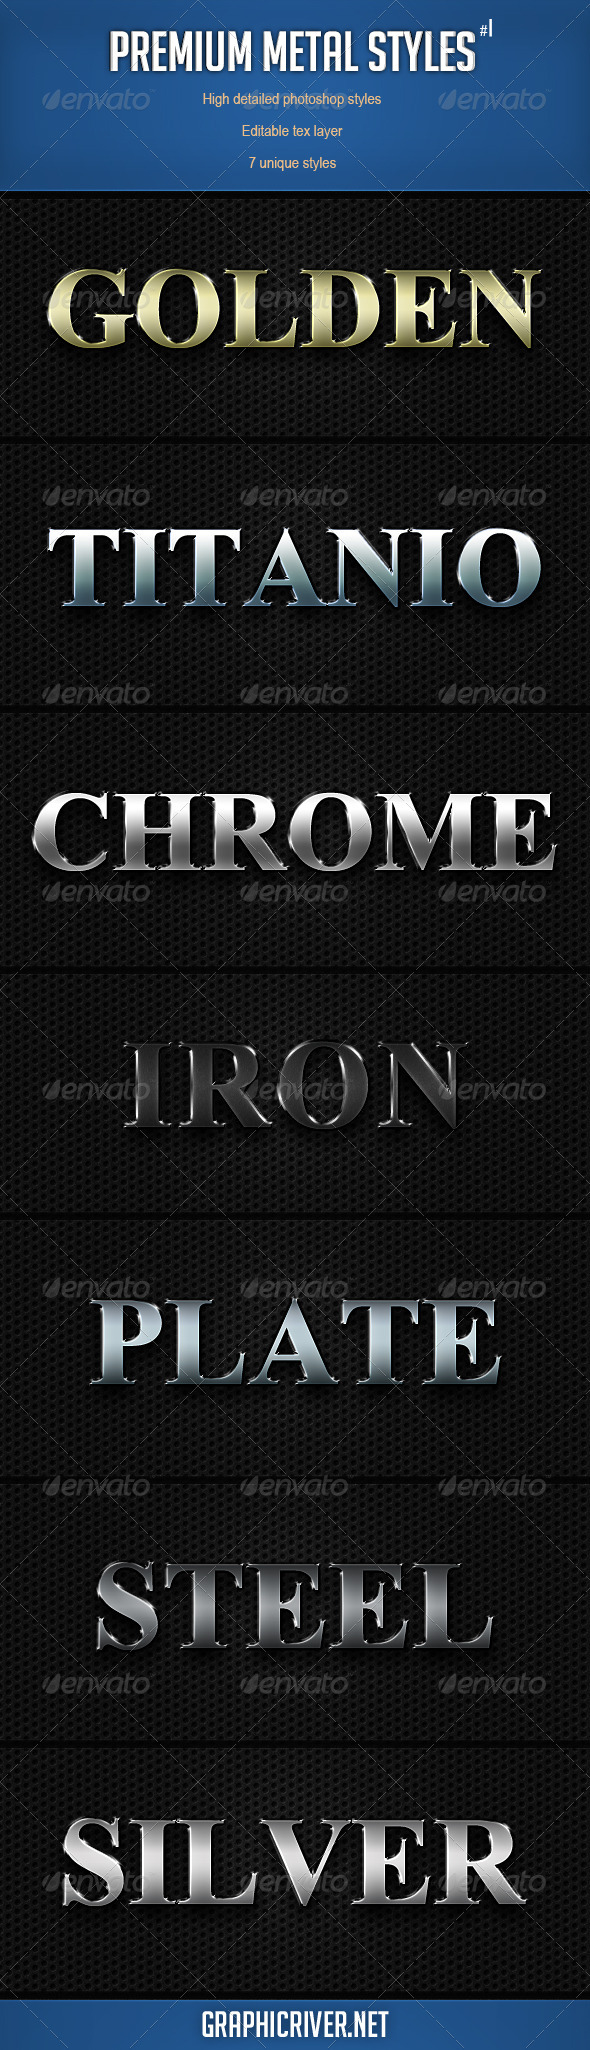 Premium Metal Styles - Text Effects Actions